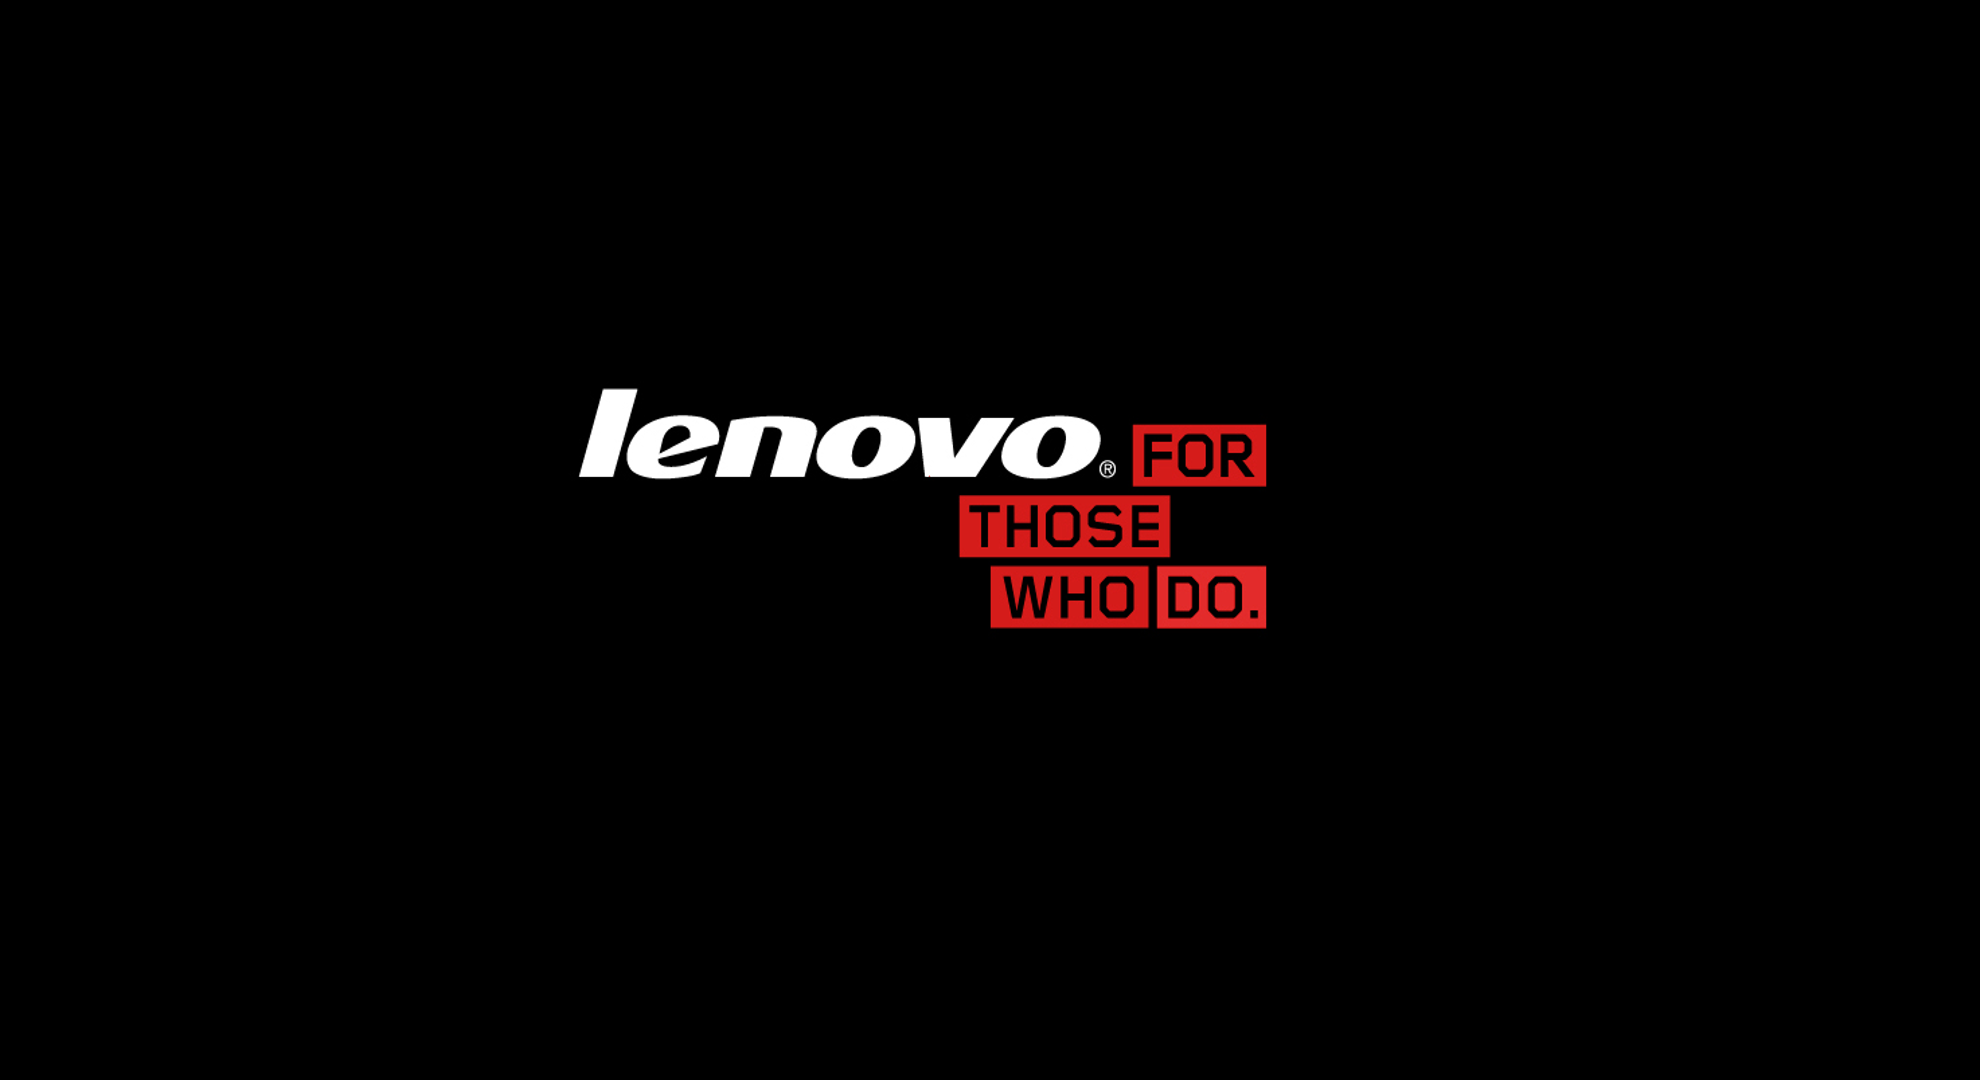 Lenovo Wallpaper Collection in HD for Download 1980x1080